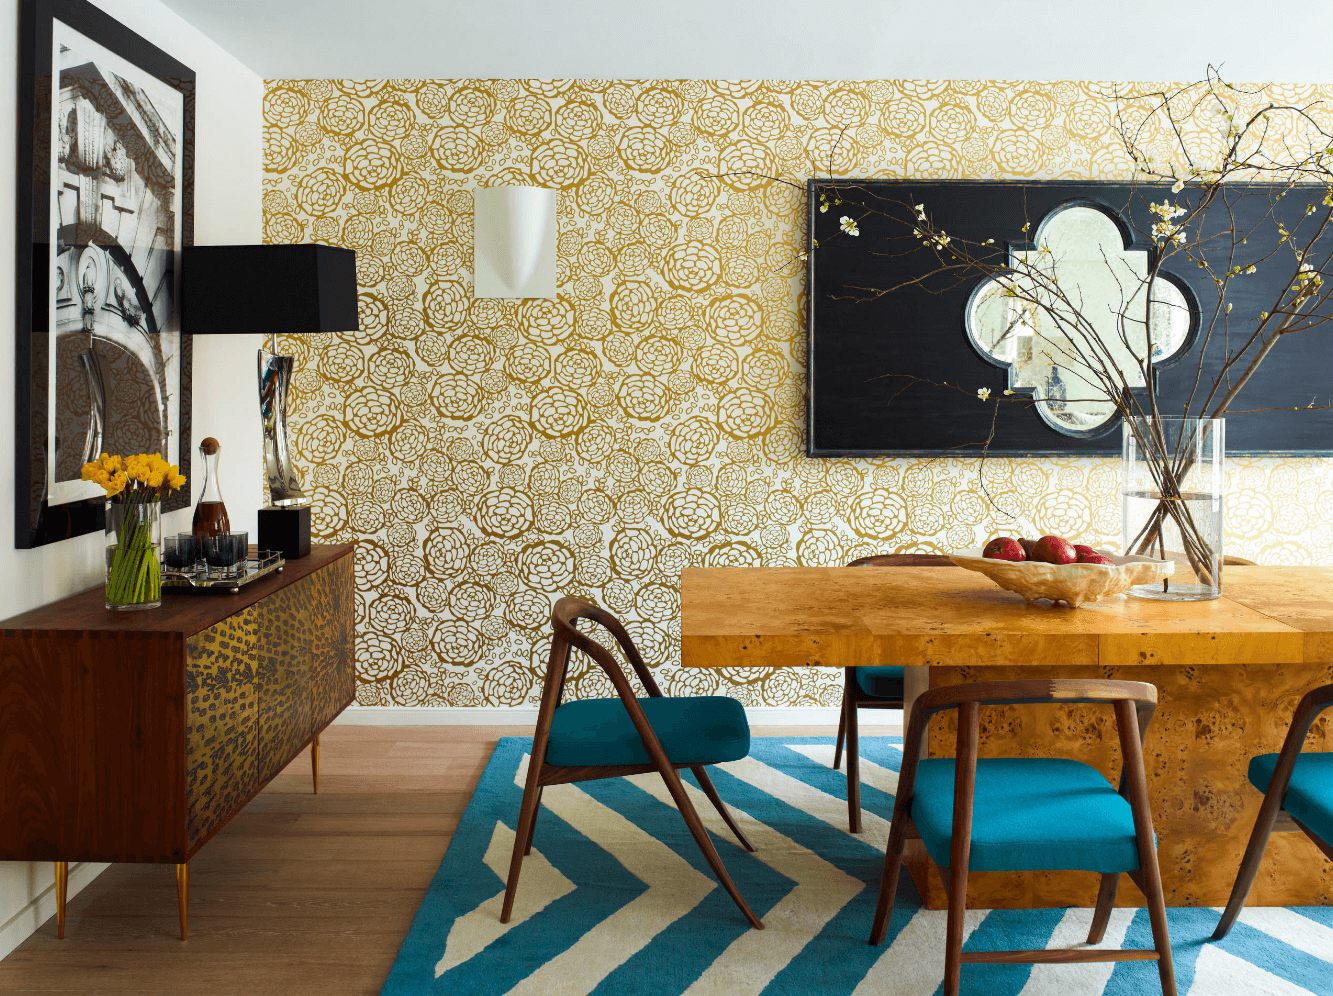 Delightful 28 Stunning Wallpaper Ideas Your Home Needs